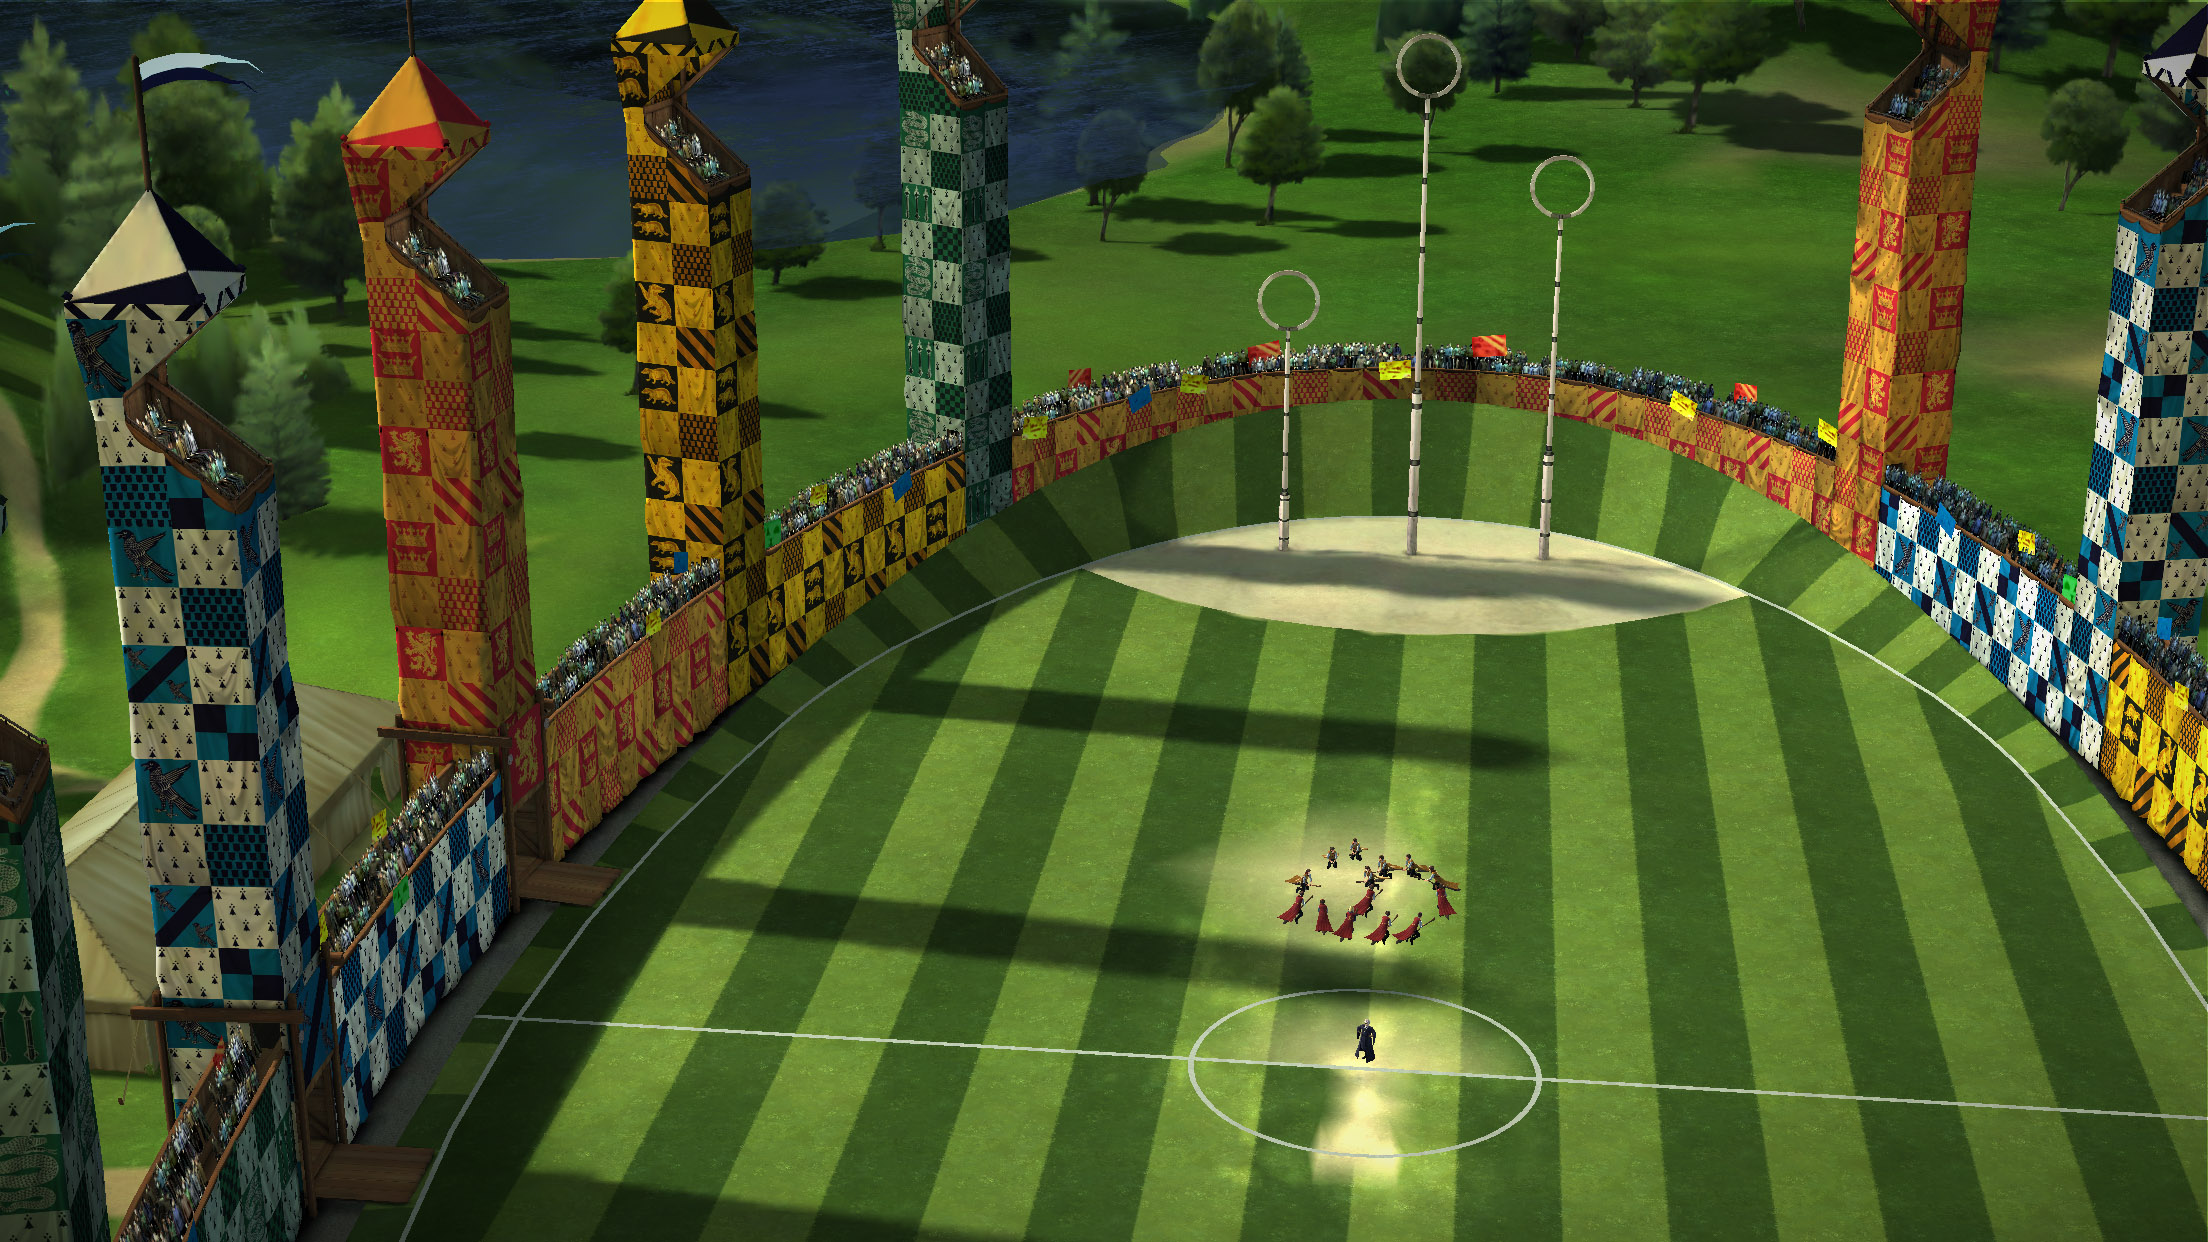 """A bird's-eye view of the Quidditch pitch is seen in this new game image from """"Harry Potter: Hogwarts Mystery""""."""